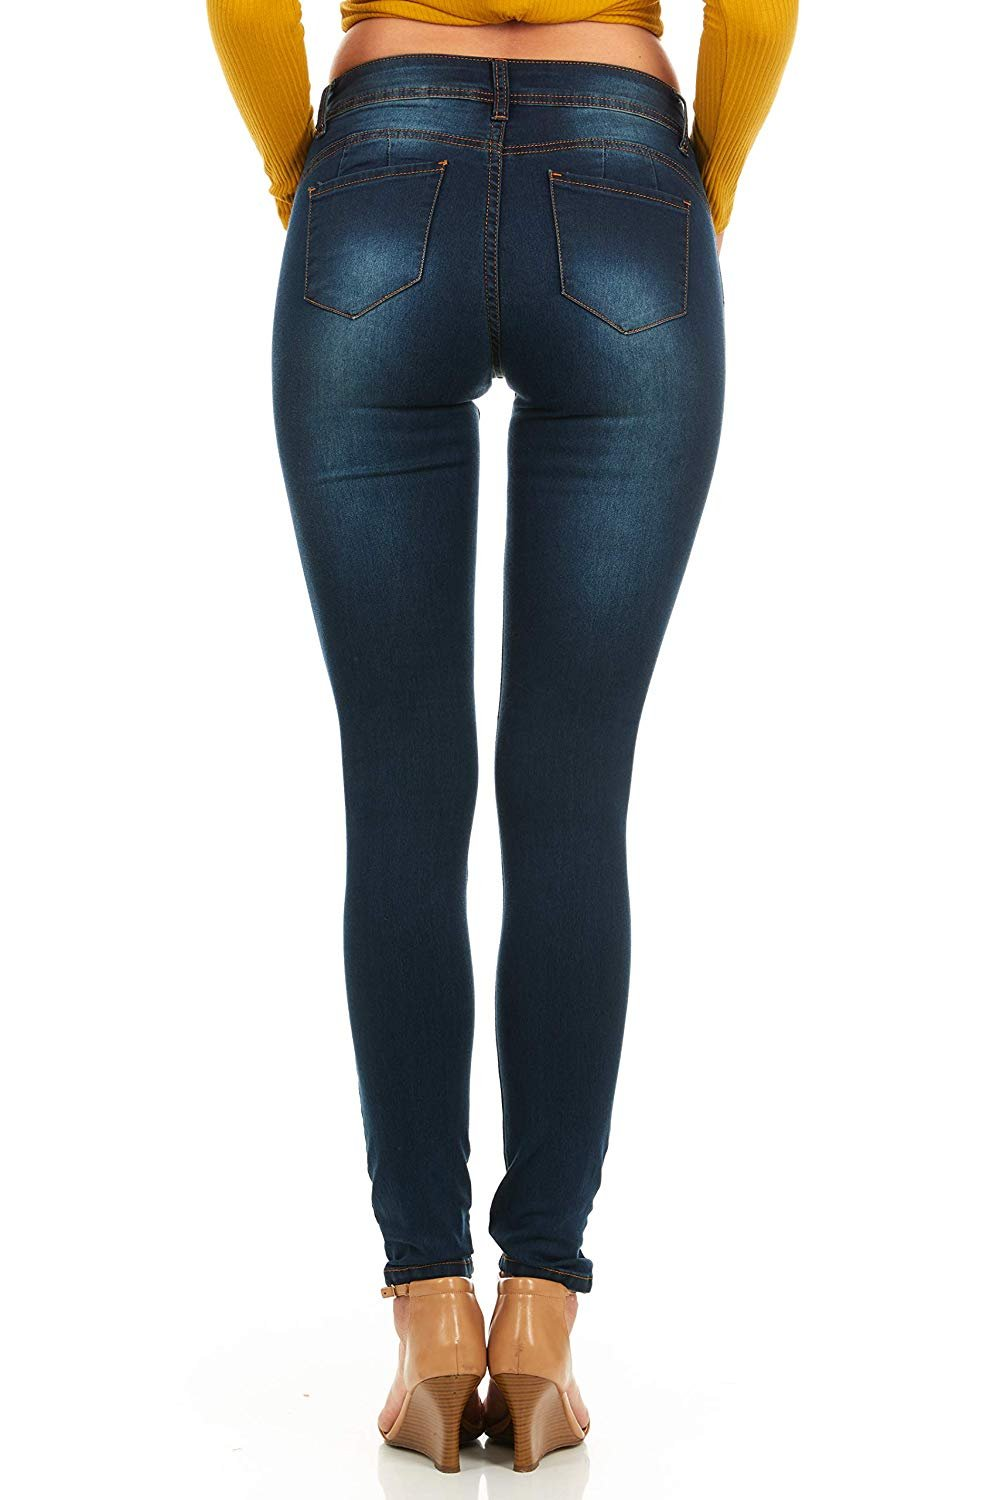 87ed0c995dc5 YDX Jeans - Cover Girl Jeans Women Juniors Mid Rise Slim Fit Stretchy  Skinny Jeans 4 Options - Walmart.com